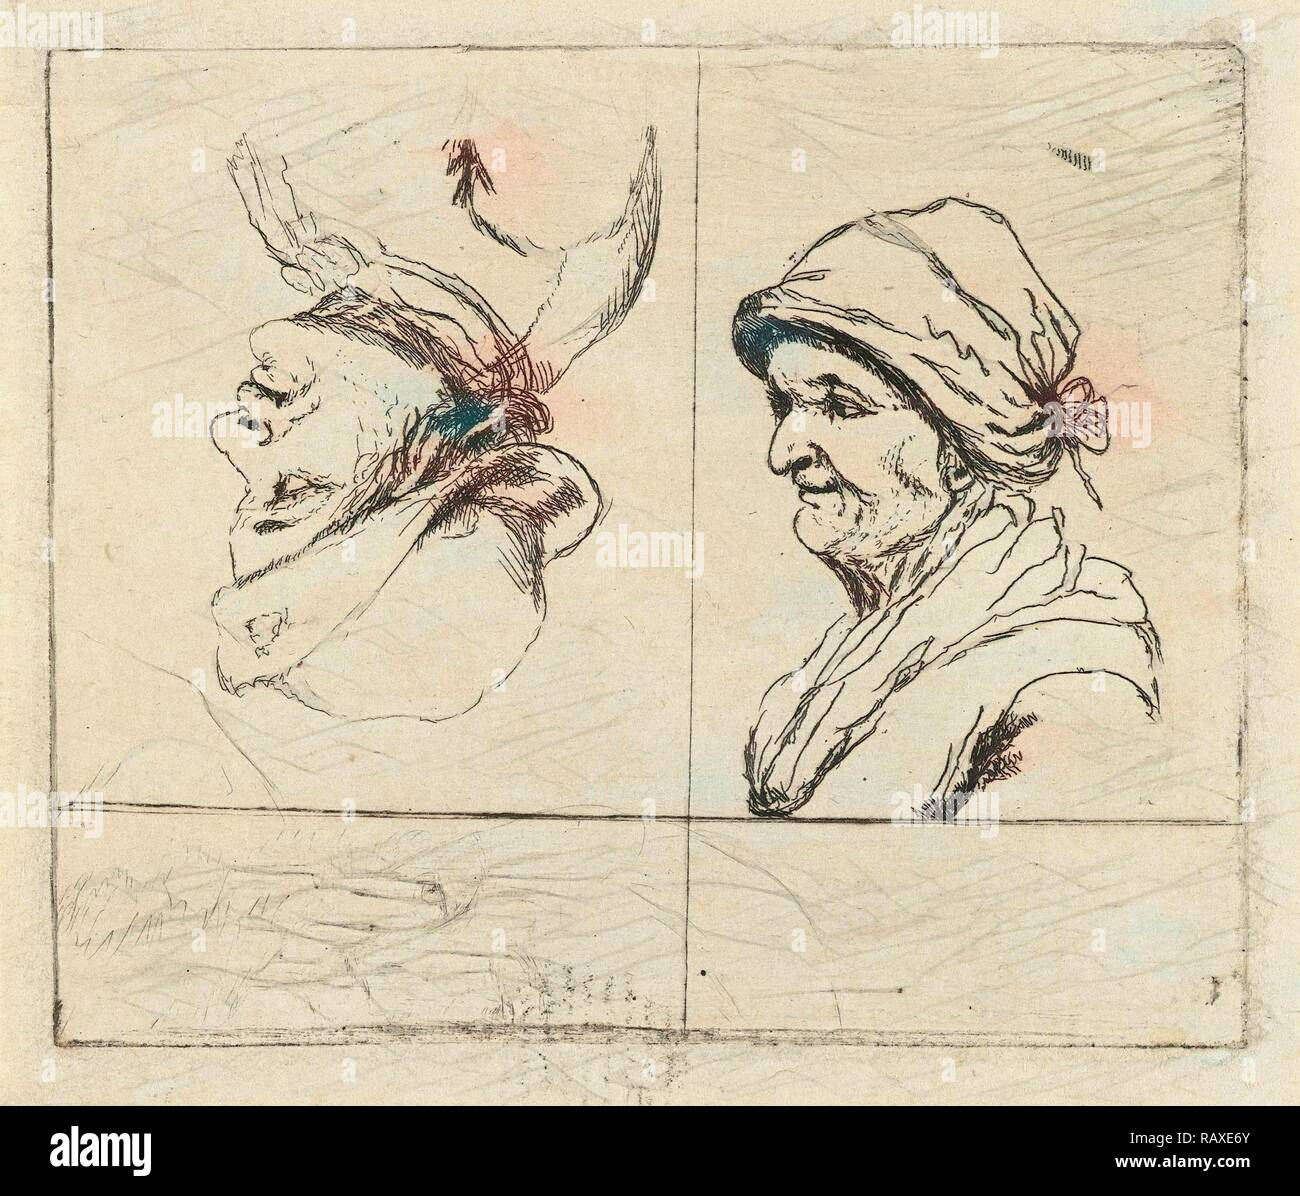 Study Sheet with two portrait busts, Marie Lambertine Coclers, 1776 - 1815. Reimagined by Gibon. Classic art with a reimagined - Stock Image